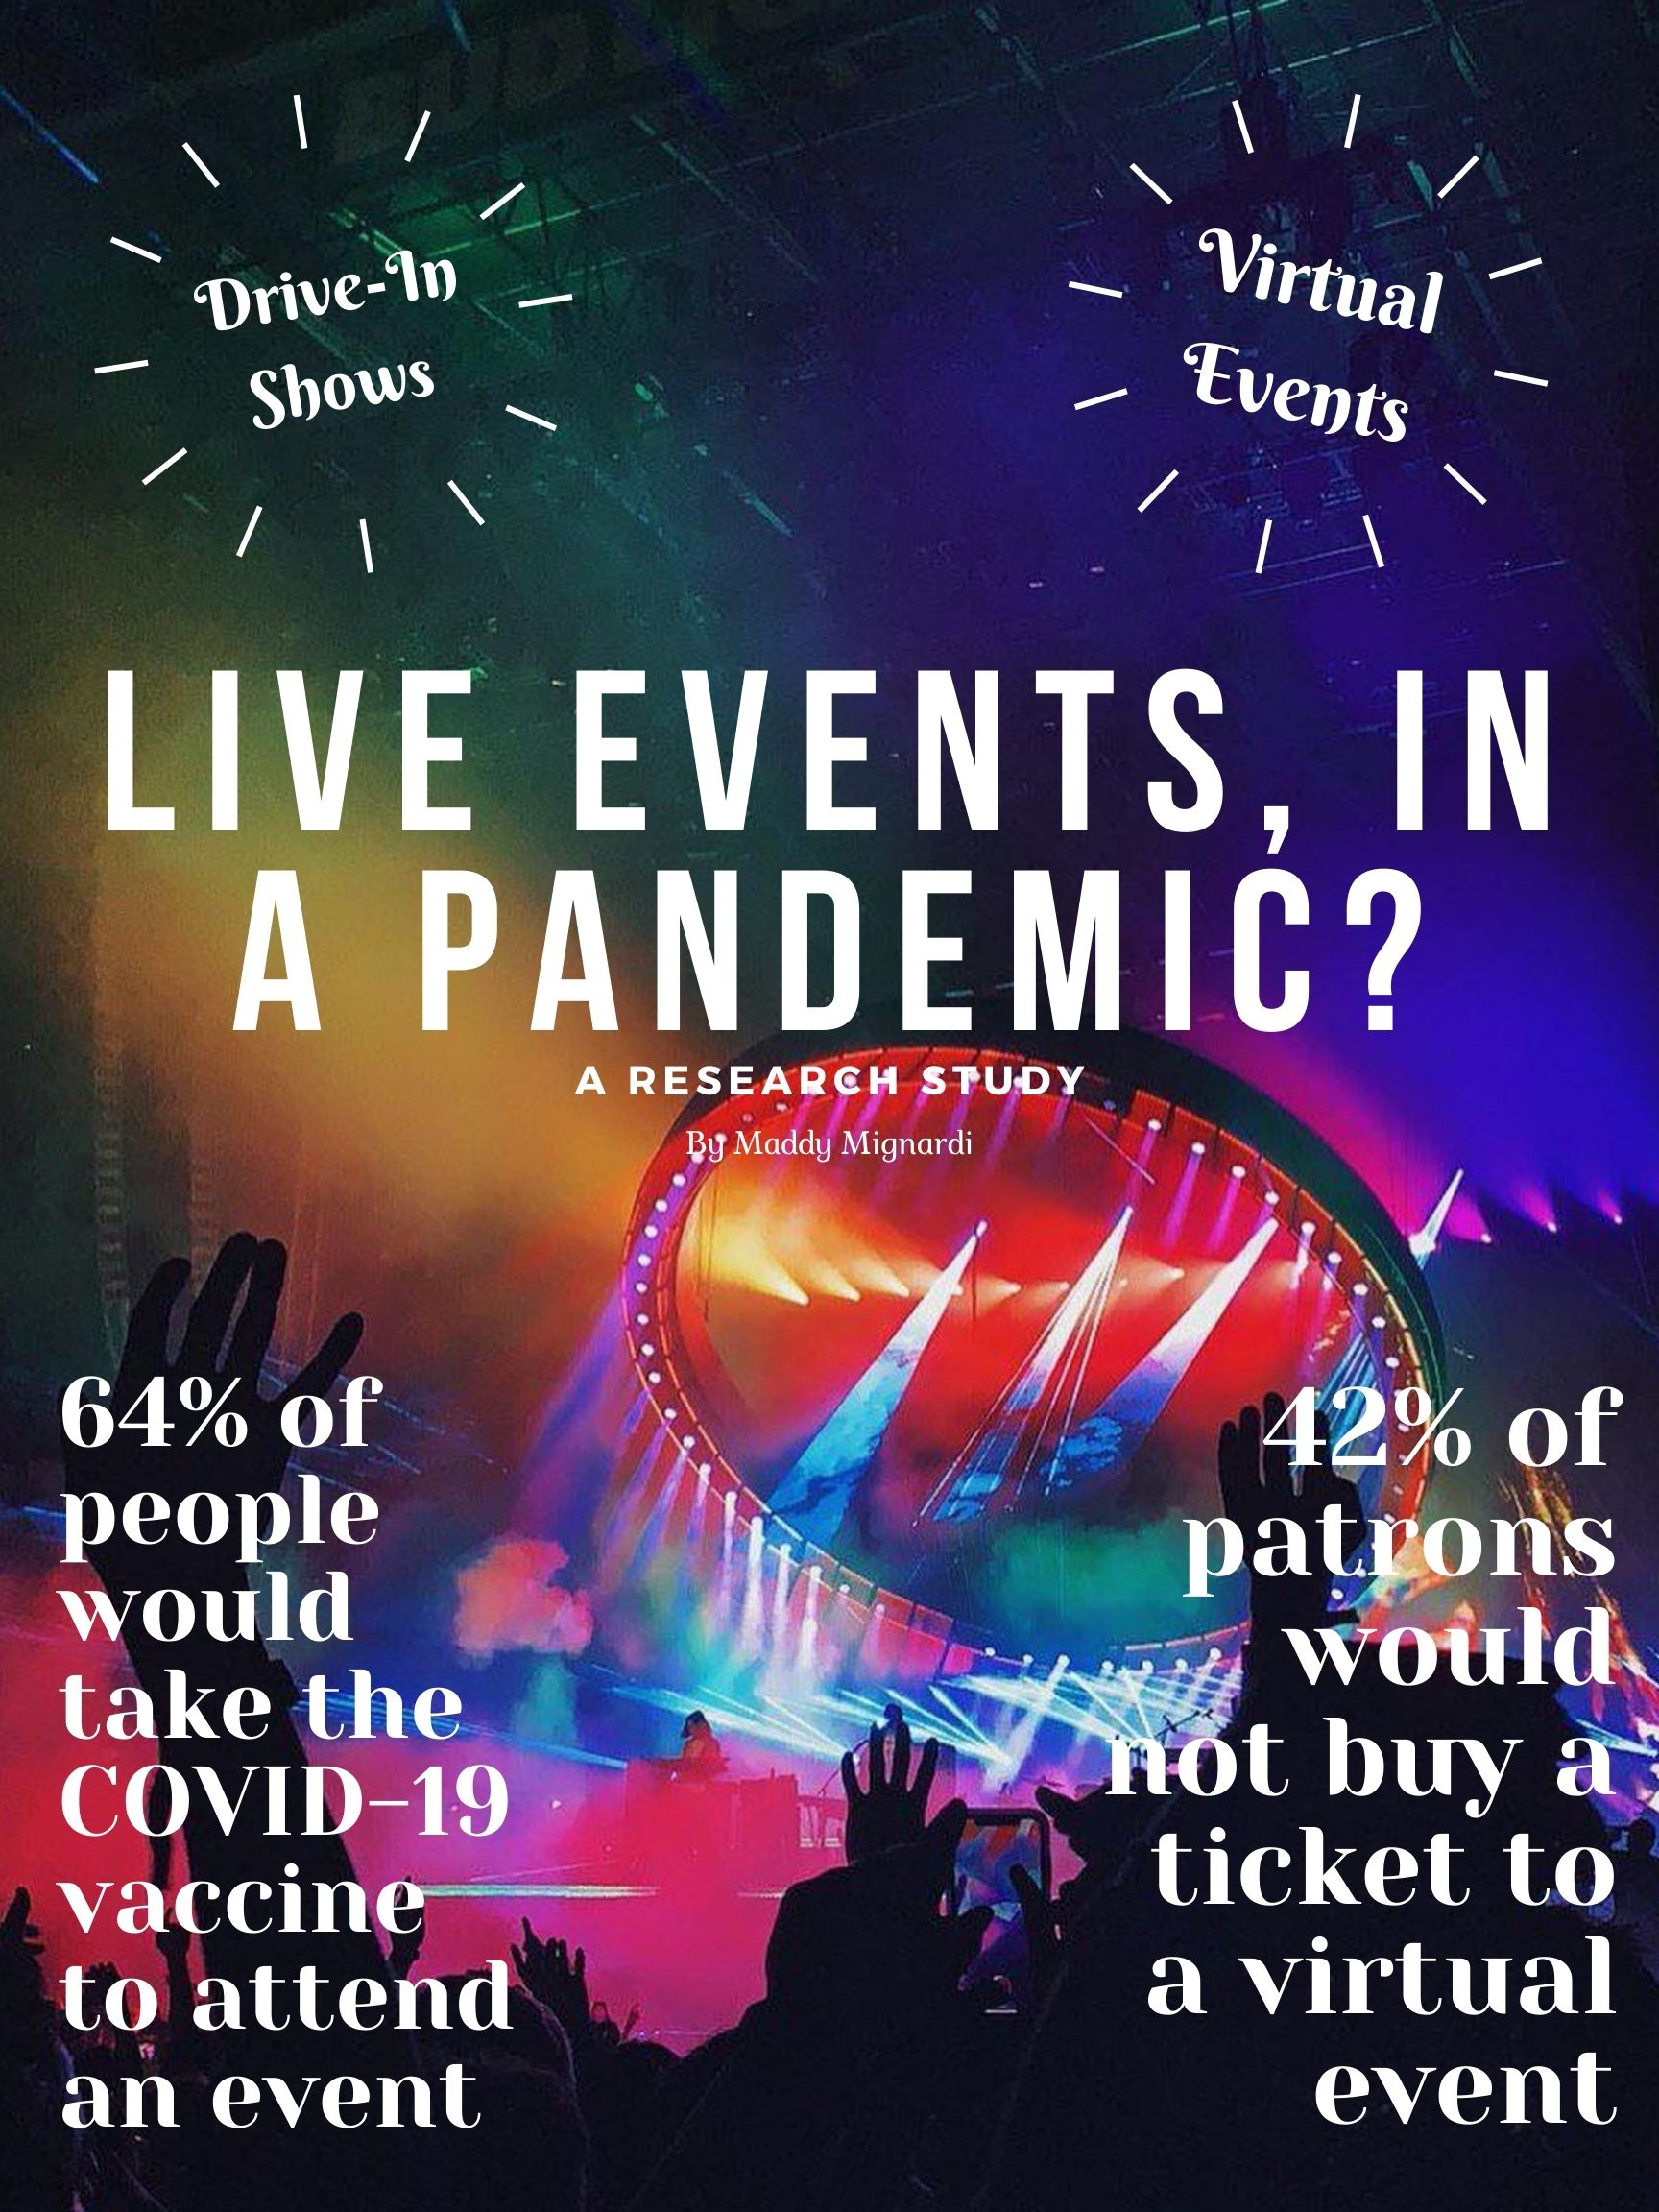 The Importance of Live Events During a Global Pandemic